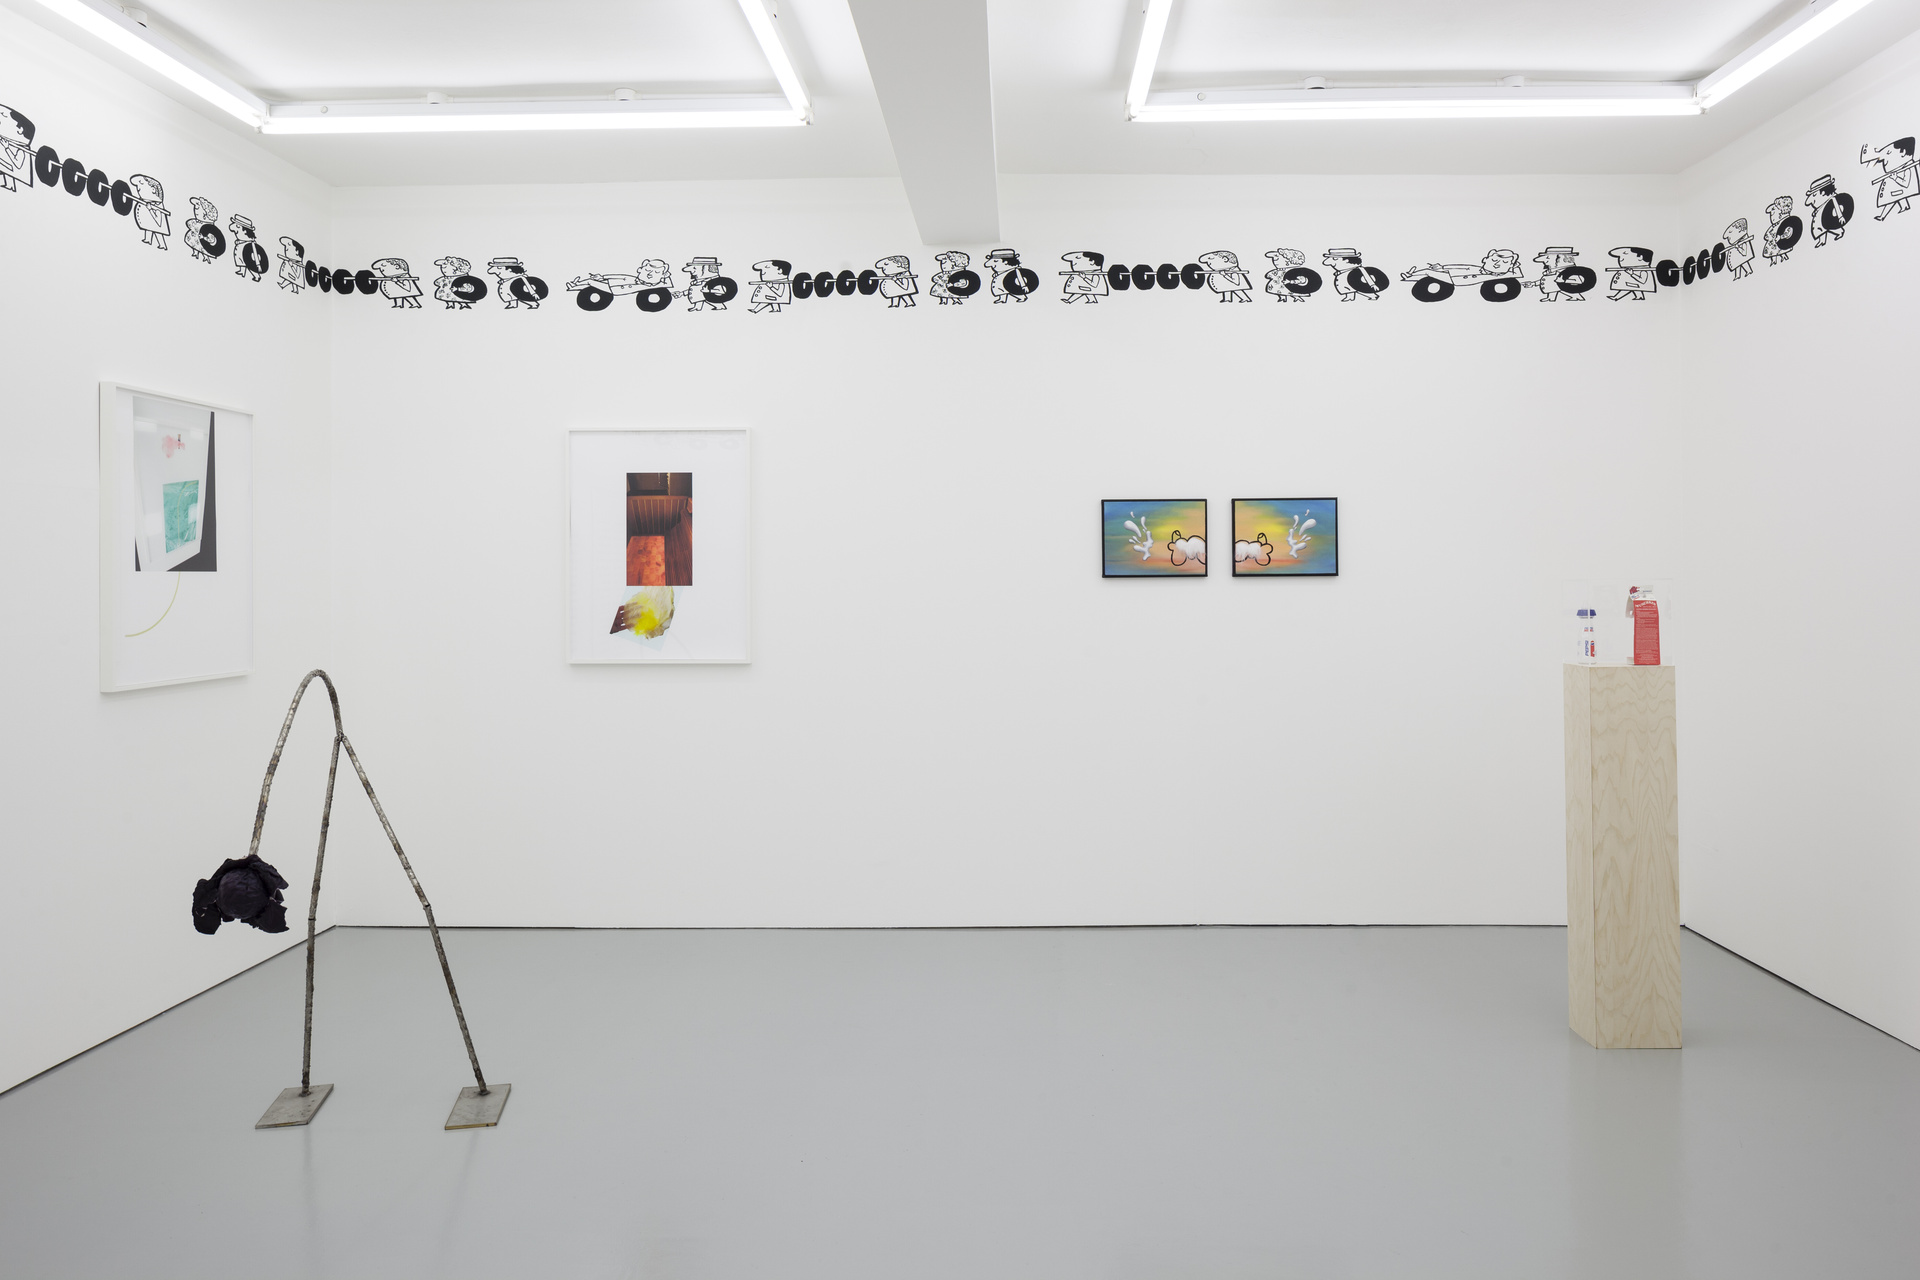 M'm! M'm! Good!, installation view, Rowing, London, 2015.jpg - 3